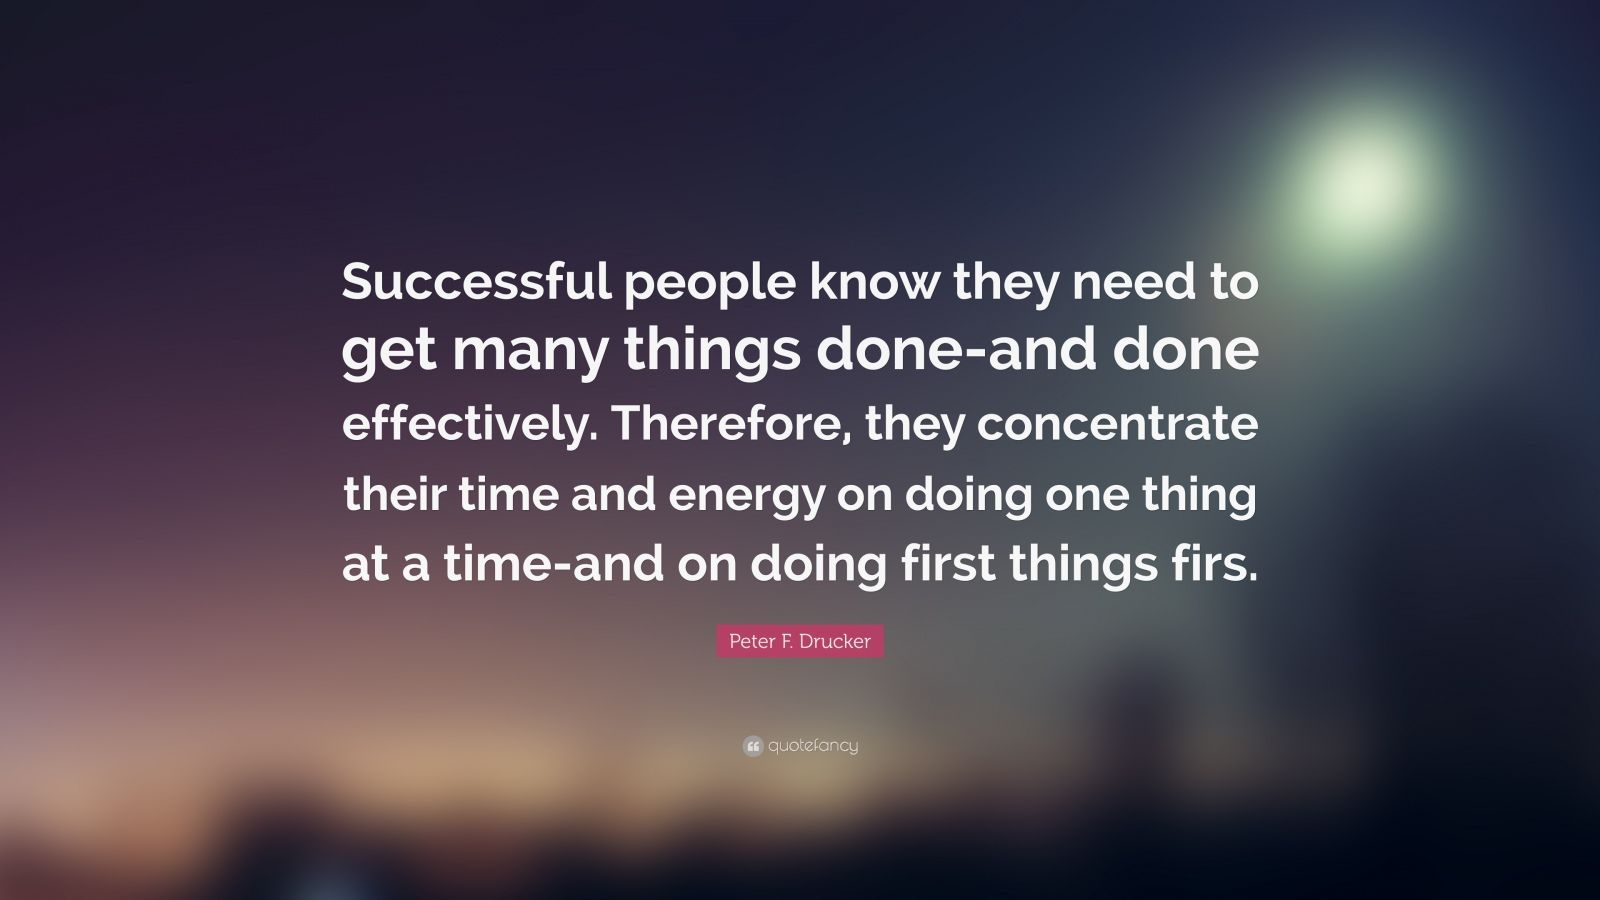 "Peter F. Drucker Quote: ""Successful people know they need to get many things done-and done effectively. Therefore, they concentrate their time and energy on doing one thing at a time-and on doing first things firs."""